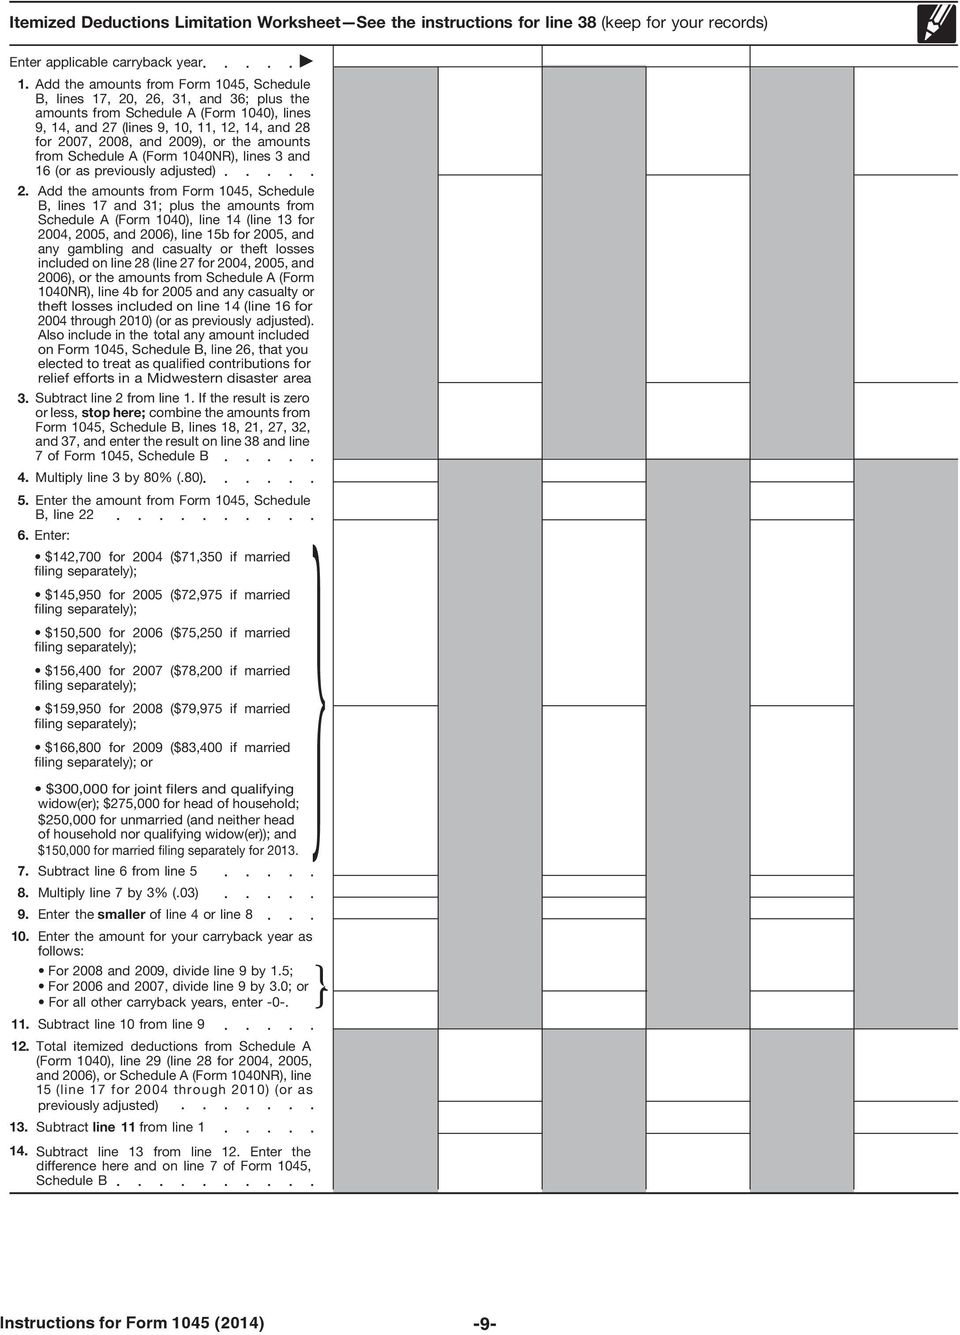 Instructions For Form Pdf